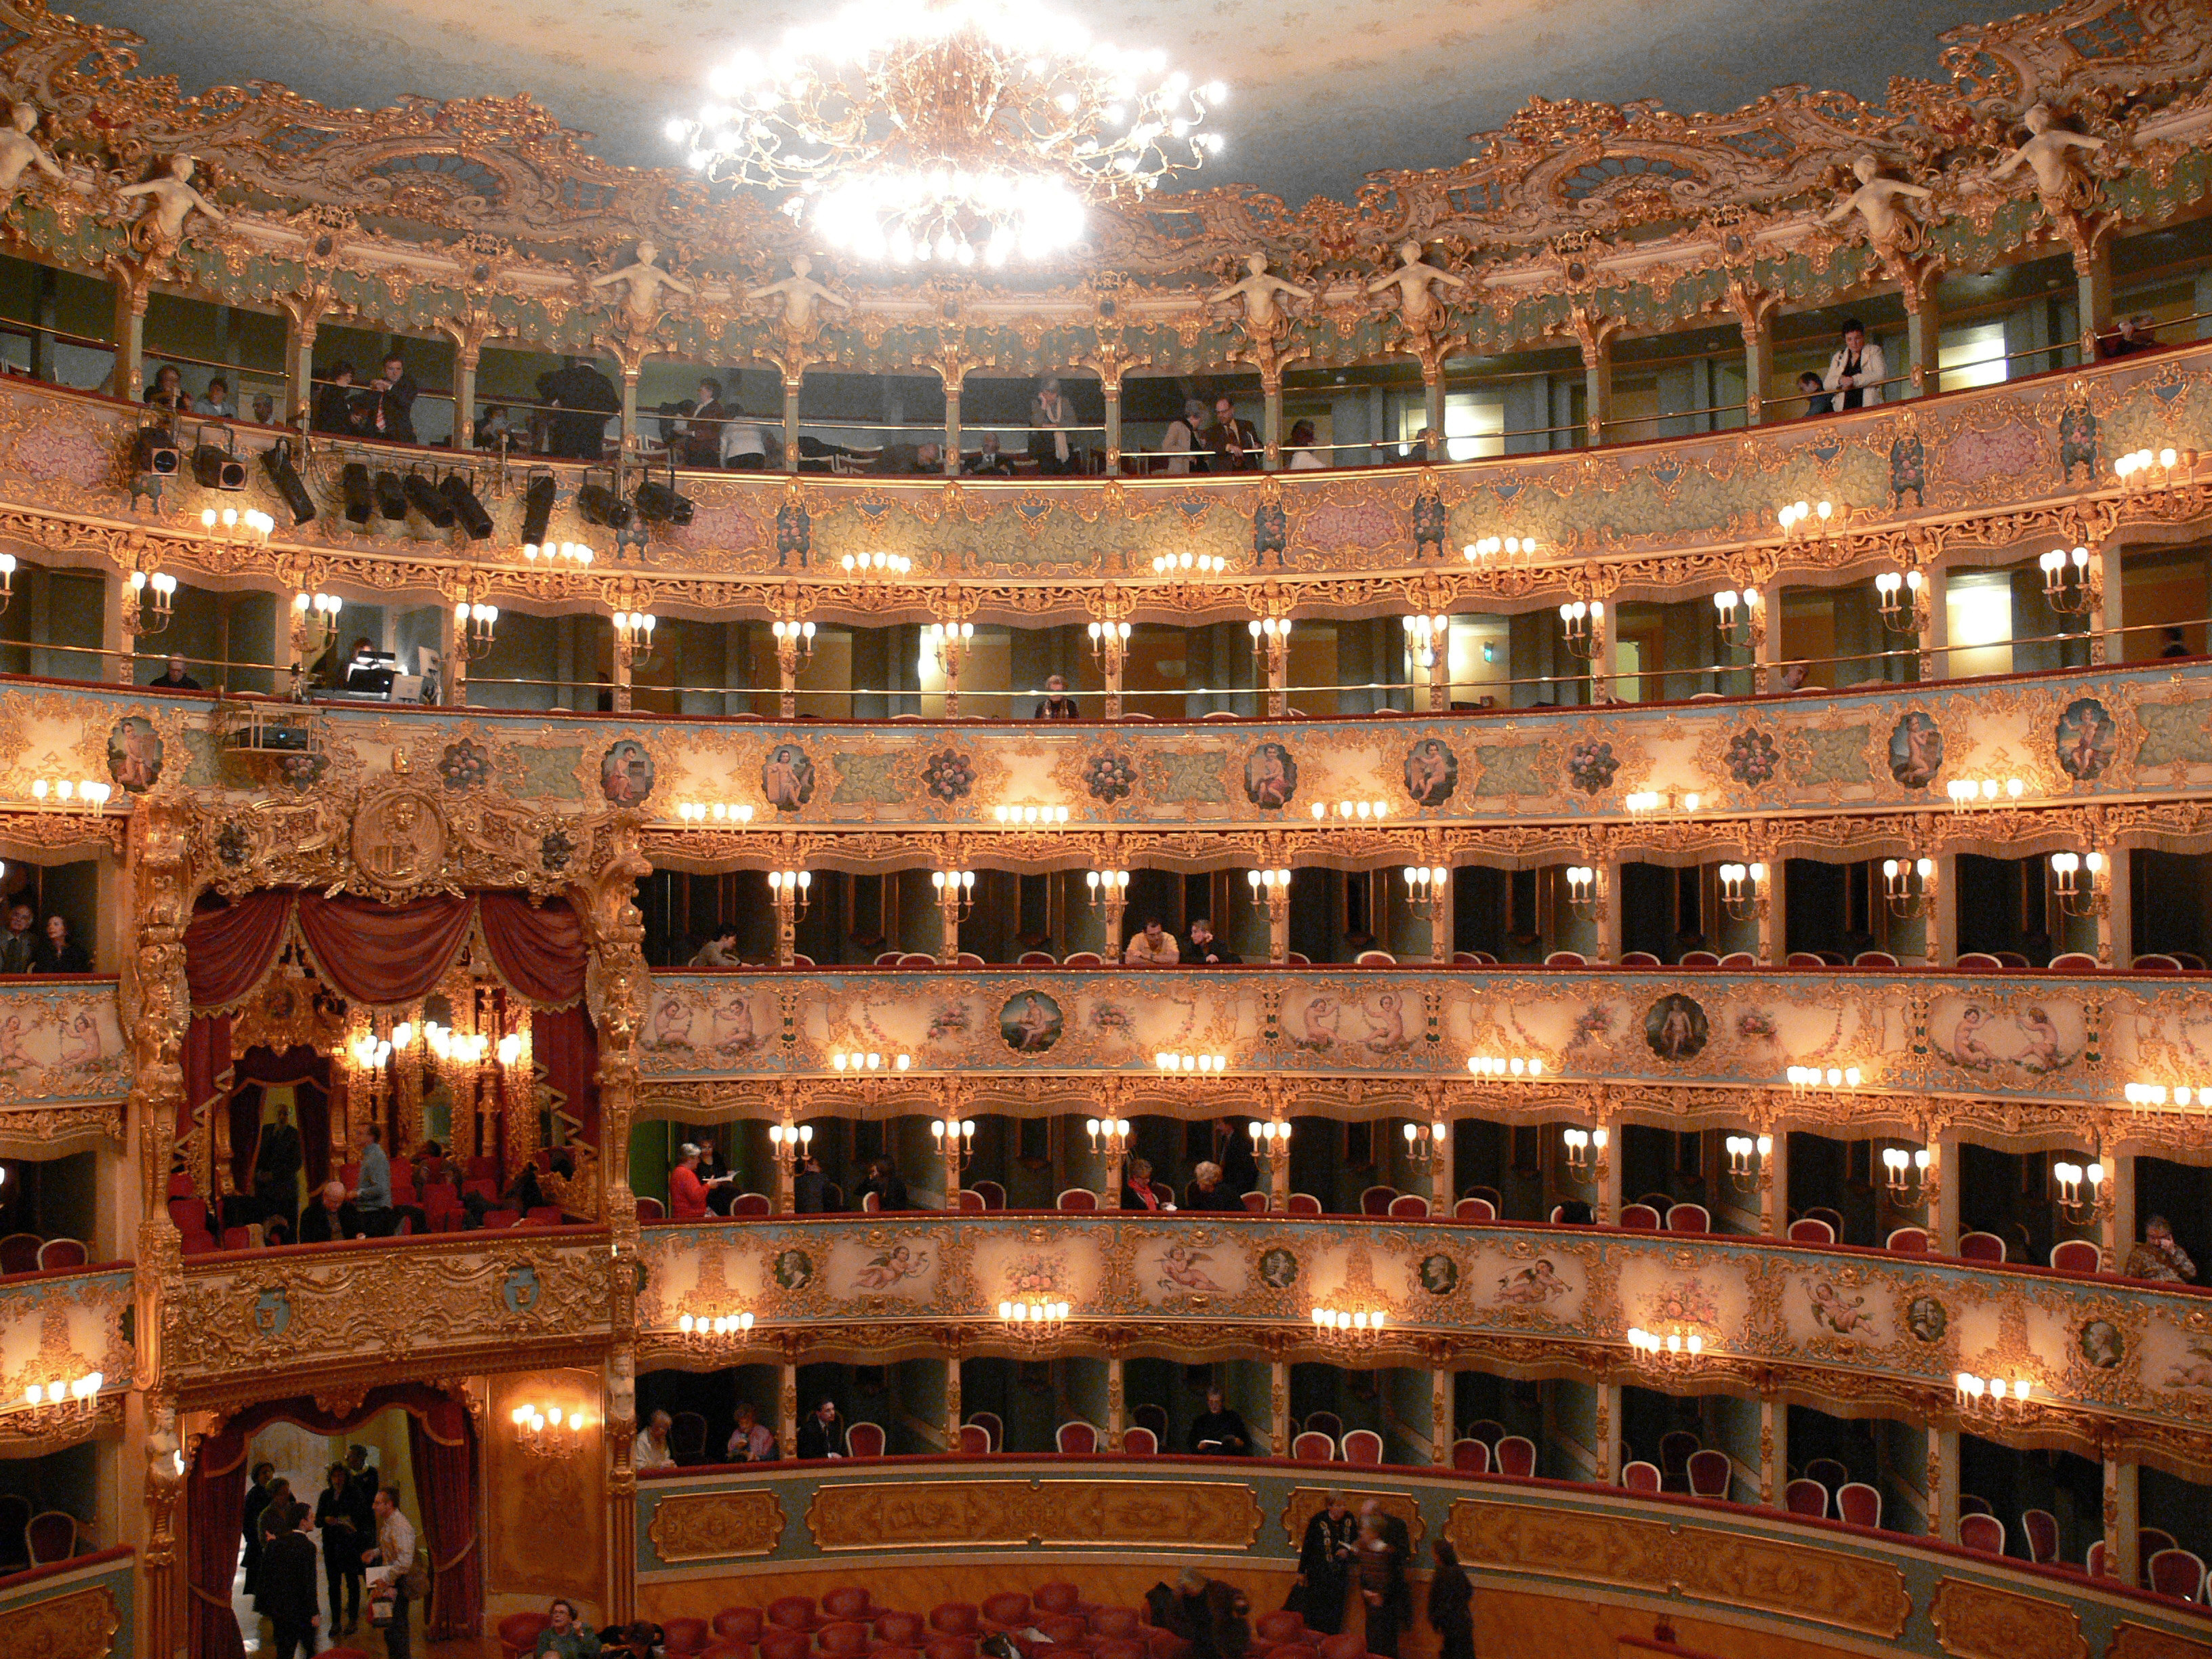 https://upload.wikimedia.org/wikipedia/commons/2/20/La_Fenice_auditorium.jpg